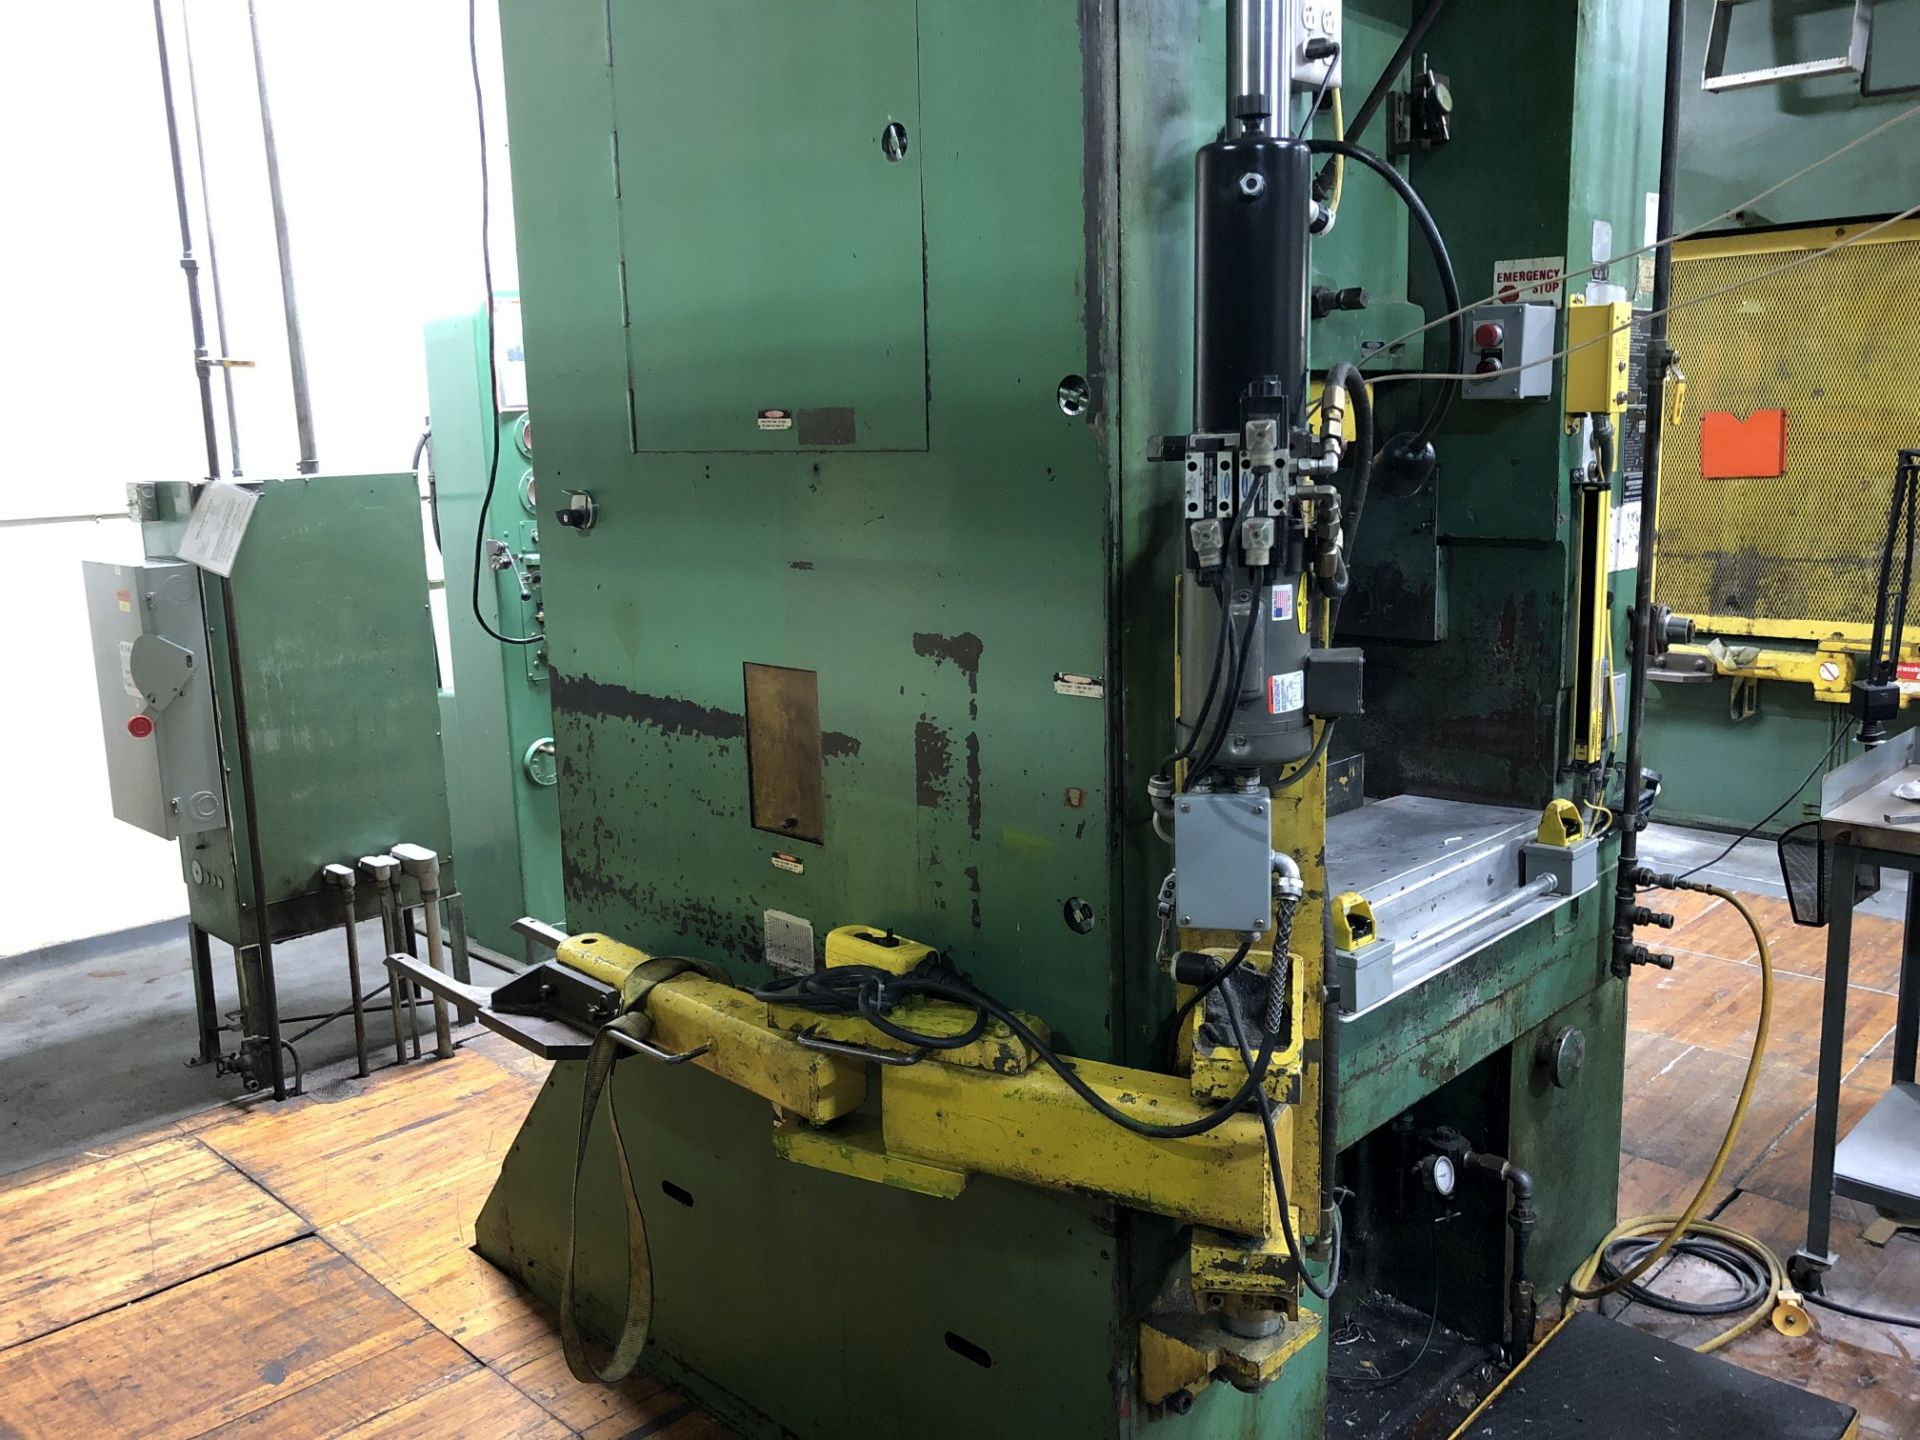 800 Ton Komatsu Maypress Knuckle Joint Press - Image 12 of 17